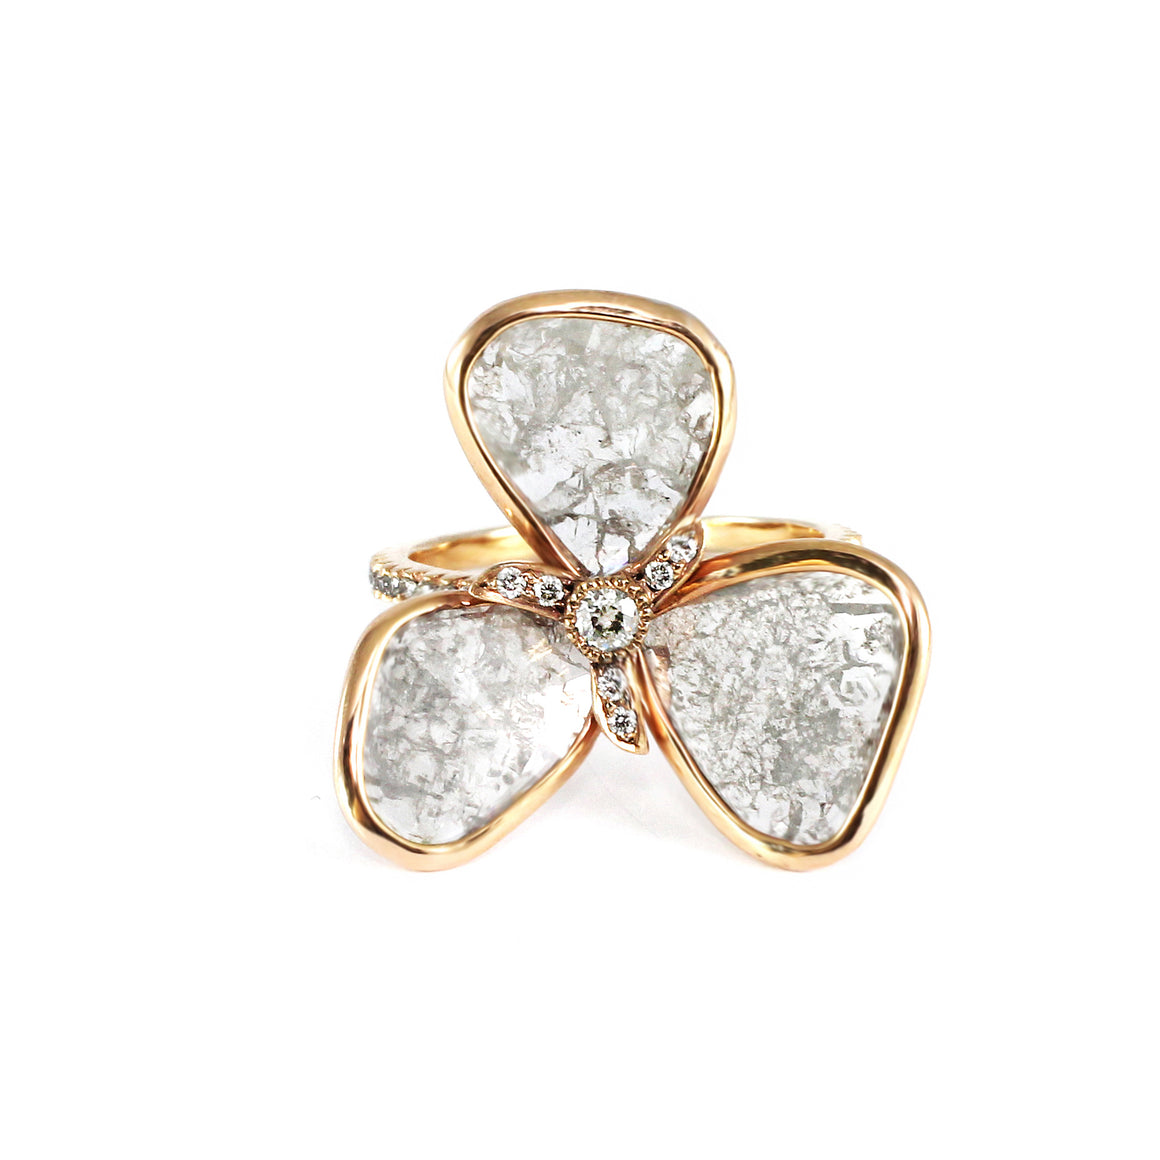 Grey Diamond Slice Flower Ring by Vivaan - Rose Gold - Talisman Collection Fine Jewelers